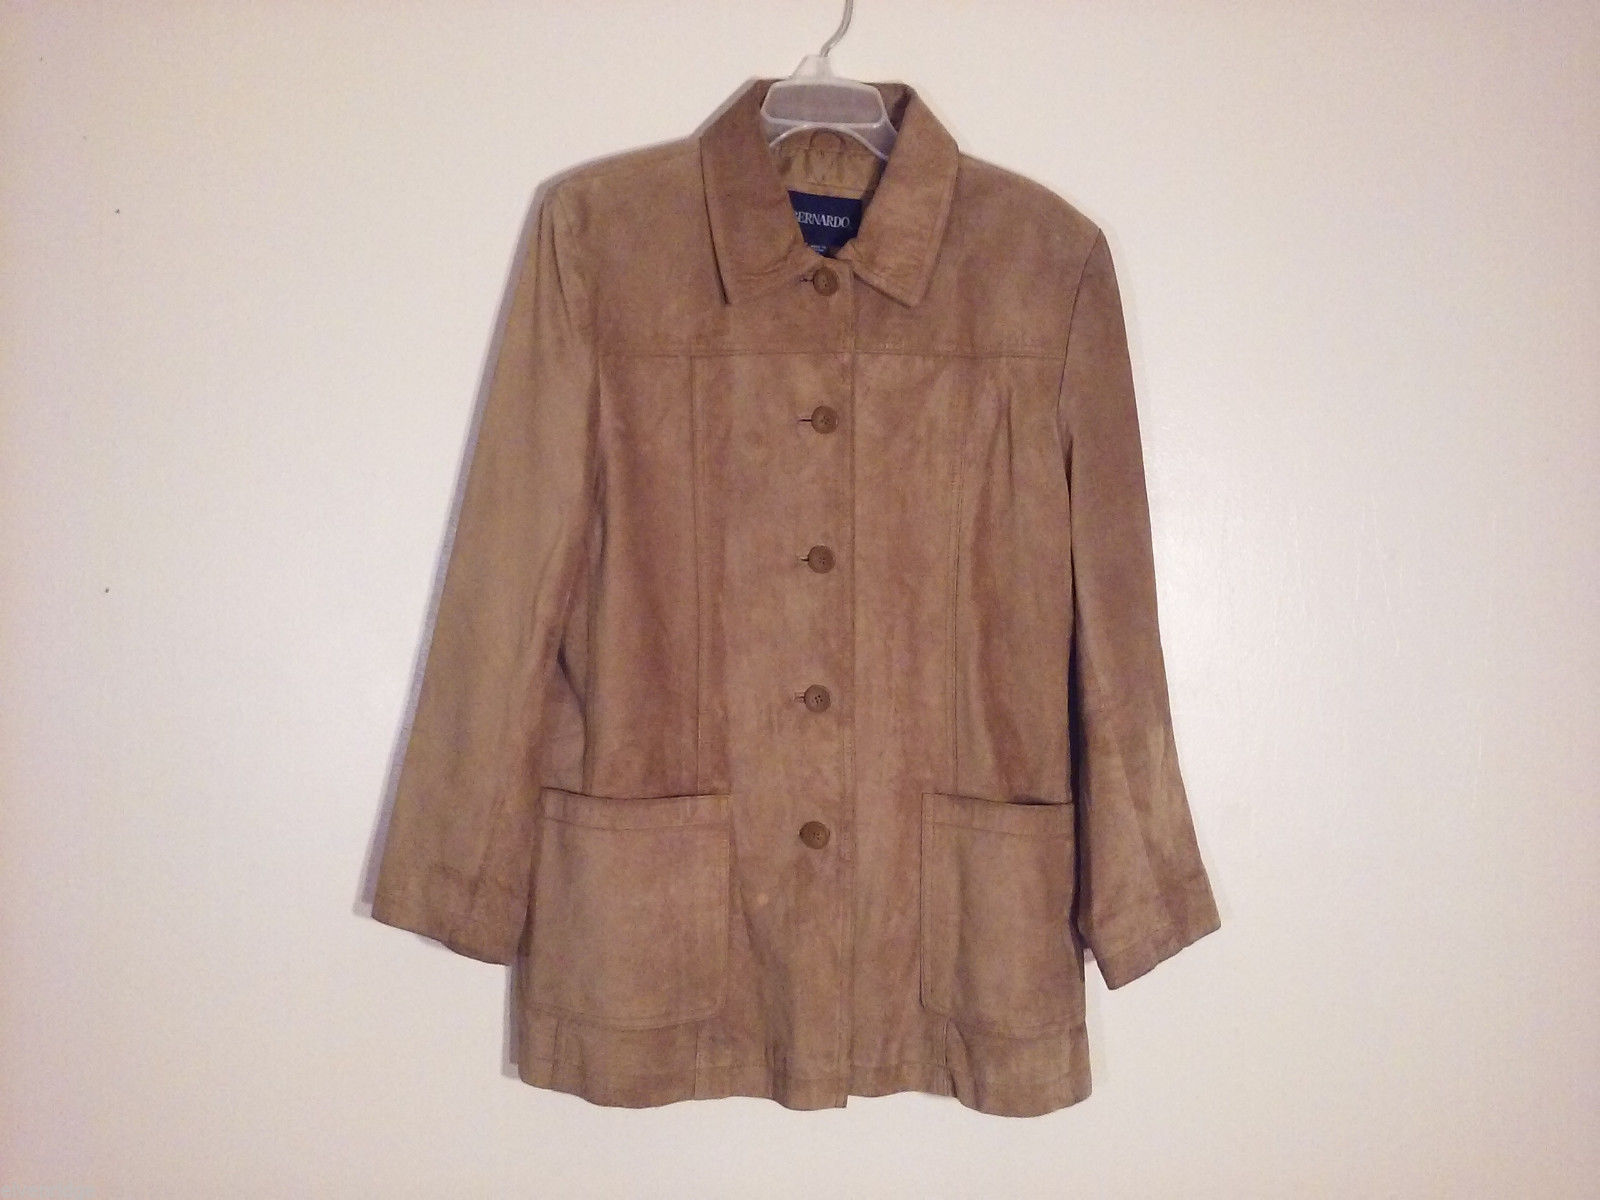 Bernado Women's Size XL Suede Coat Jacket Rich Brown Tan Caramel + Large Pockets